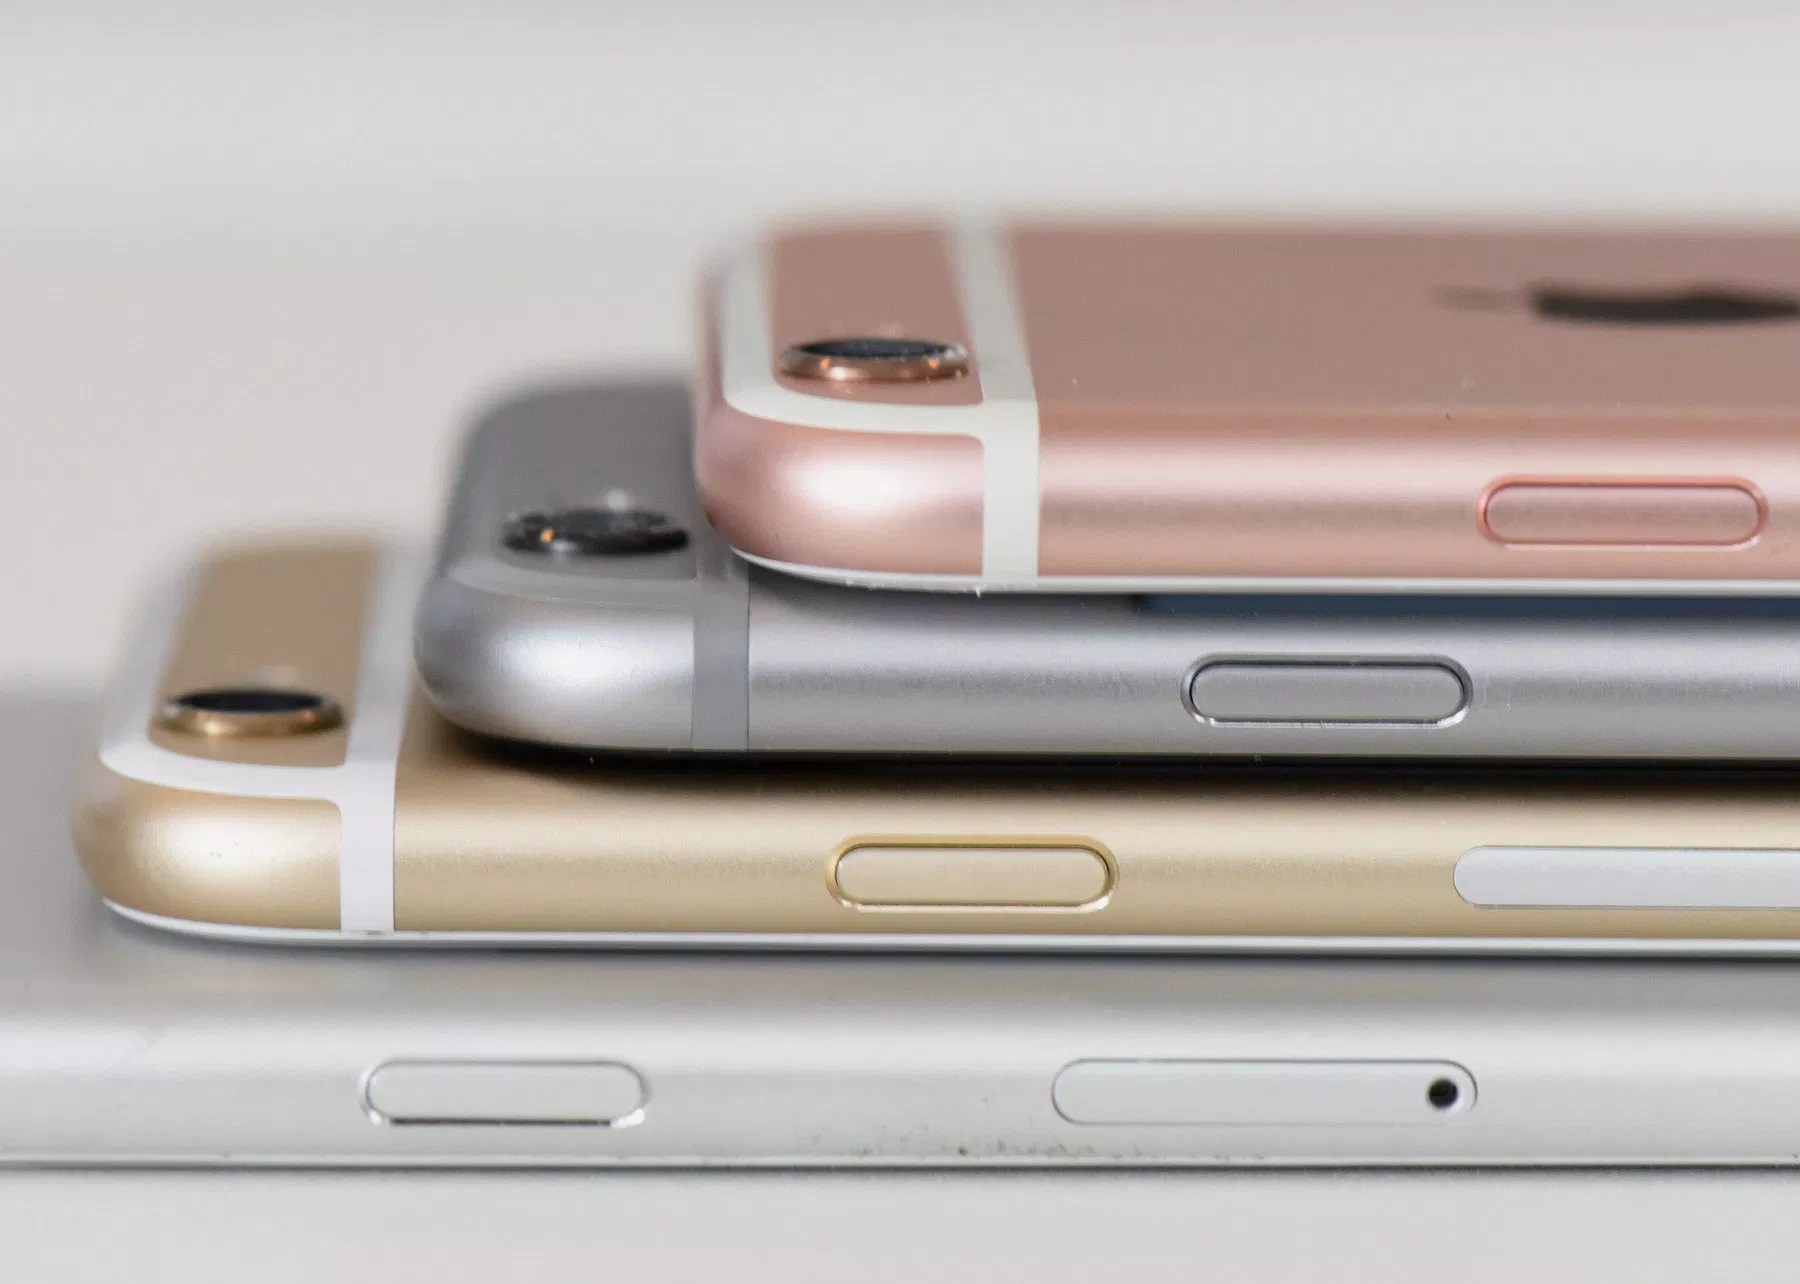 8 Things to Know About the iPhone 6s iOS 12.2 Update